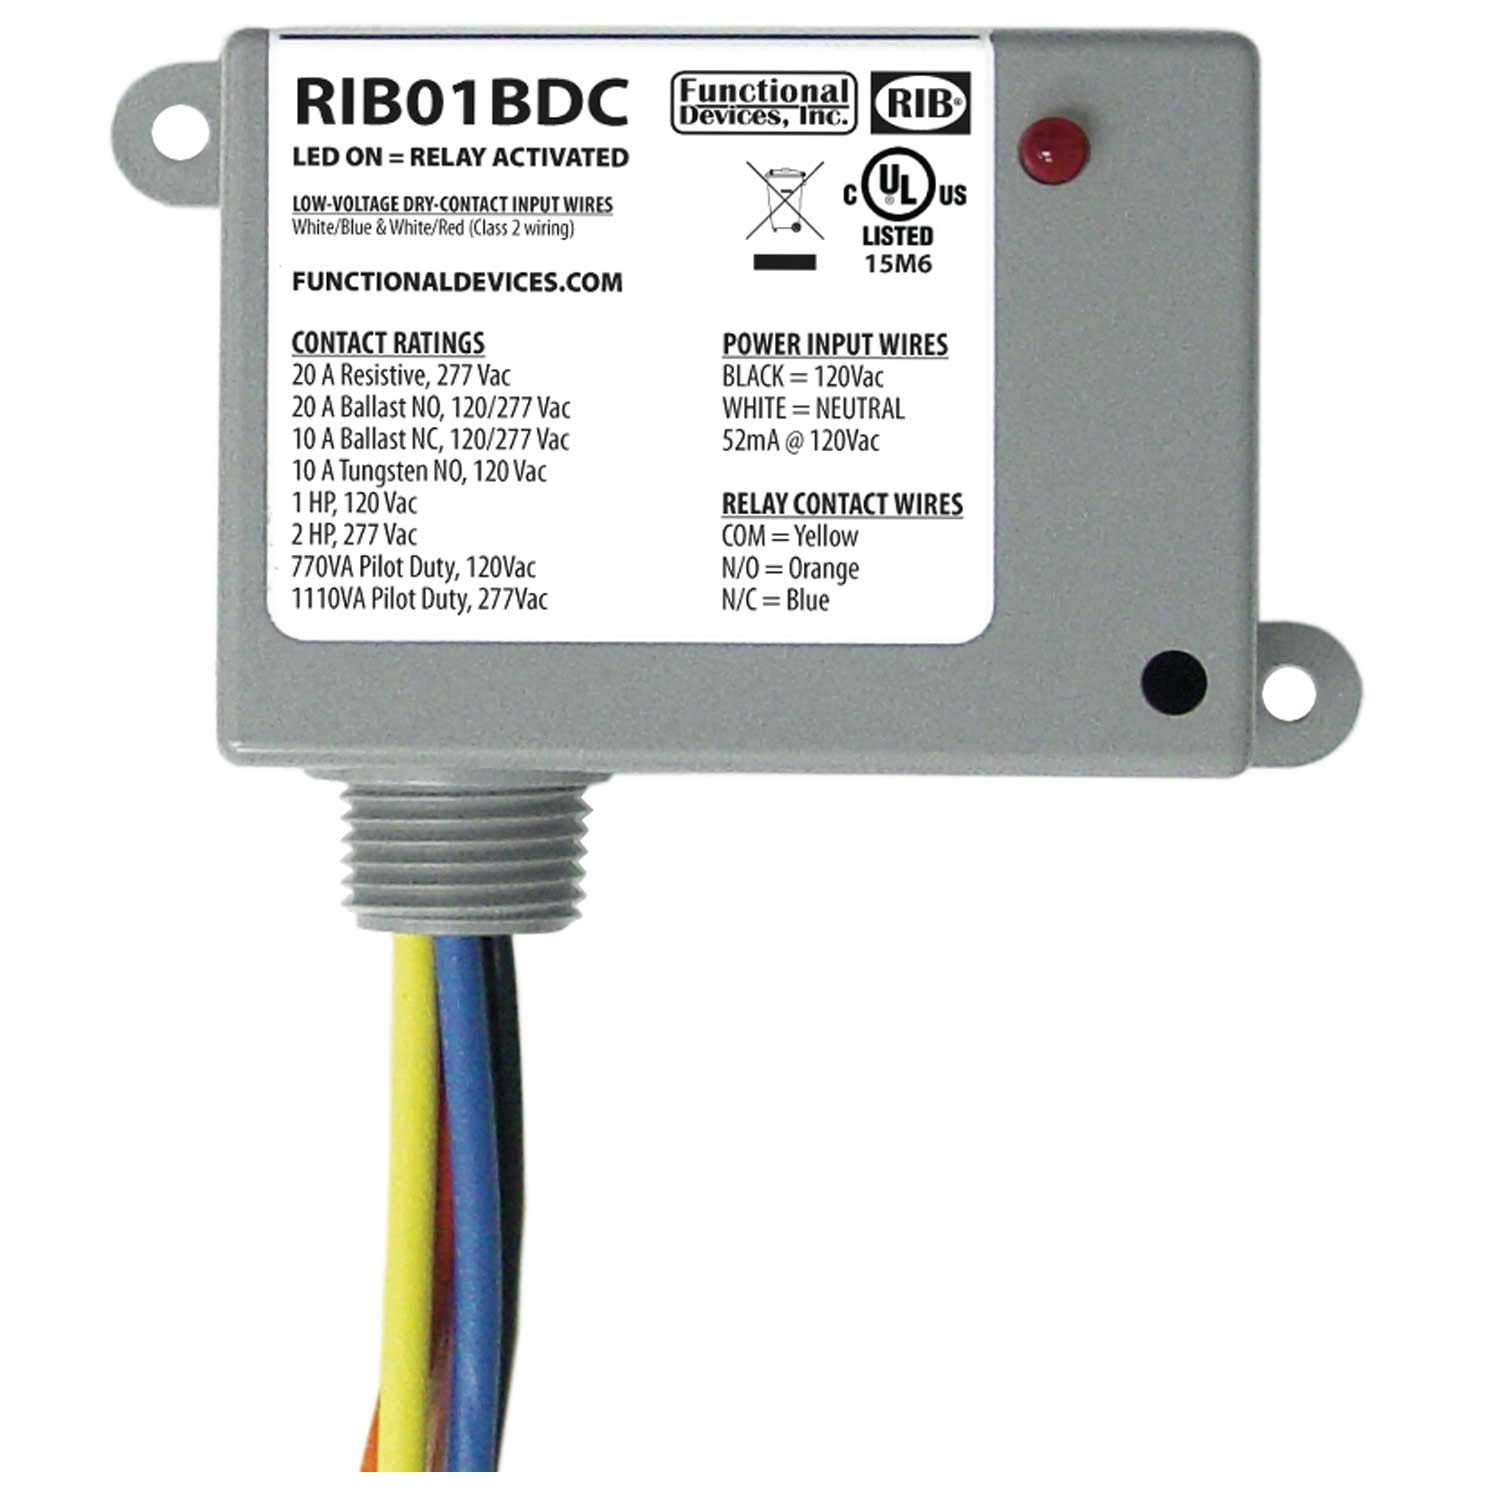 Functional Devices RIB01BDC Dry Contact Relay, 20 Amp SPDT, Class 2 Dry  Contact Input, 120 Vac Power Input, NEMA 1 Housing: Amazon.com: Industrial  & ScientificAmazon.com